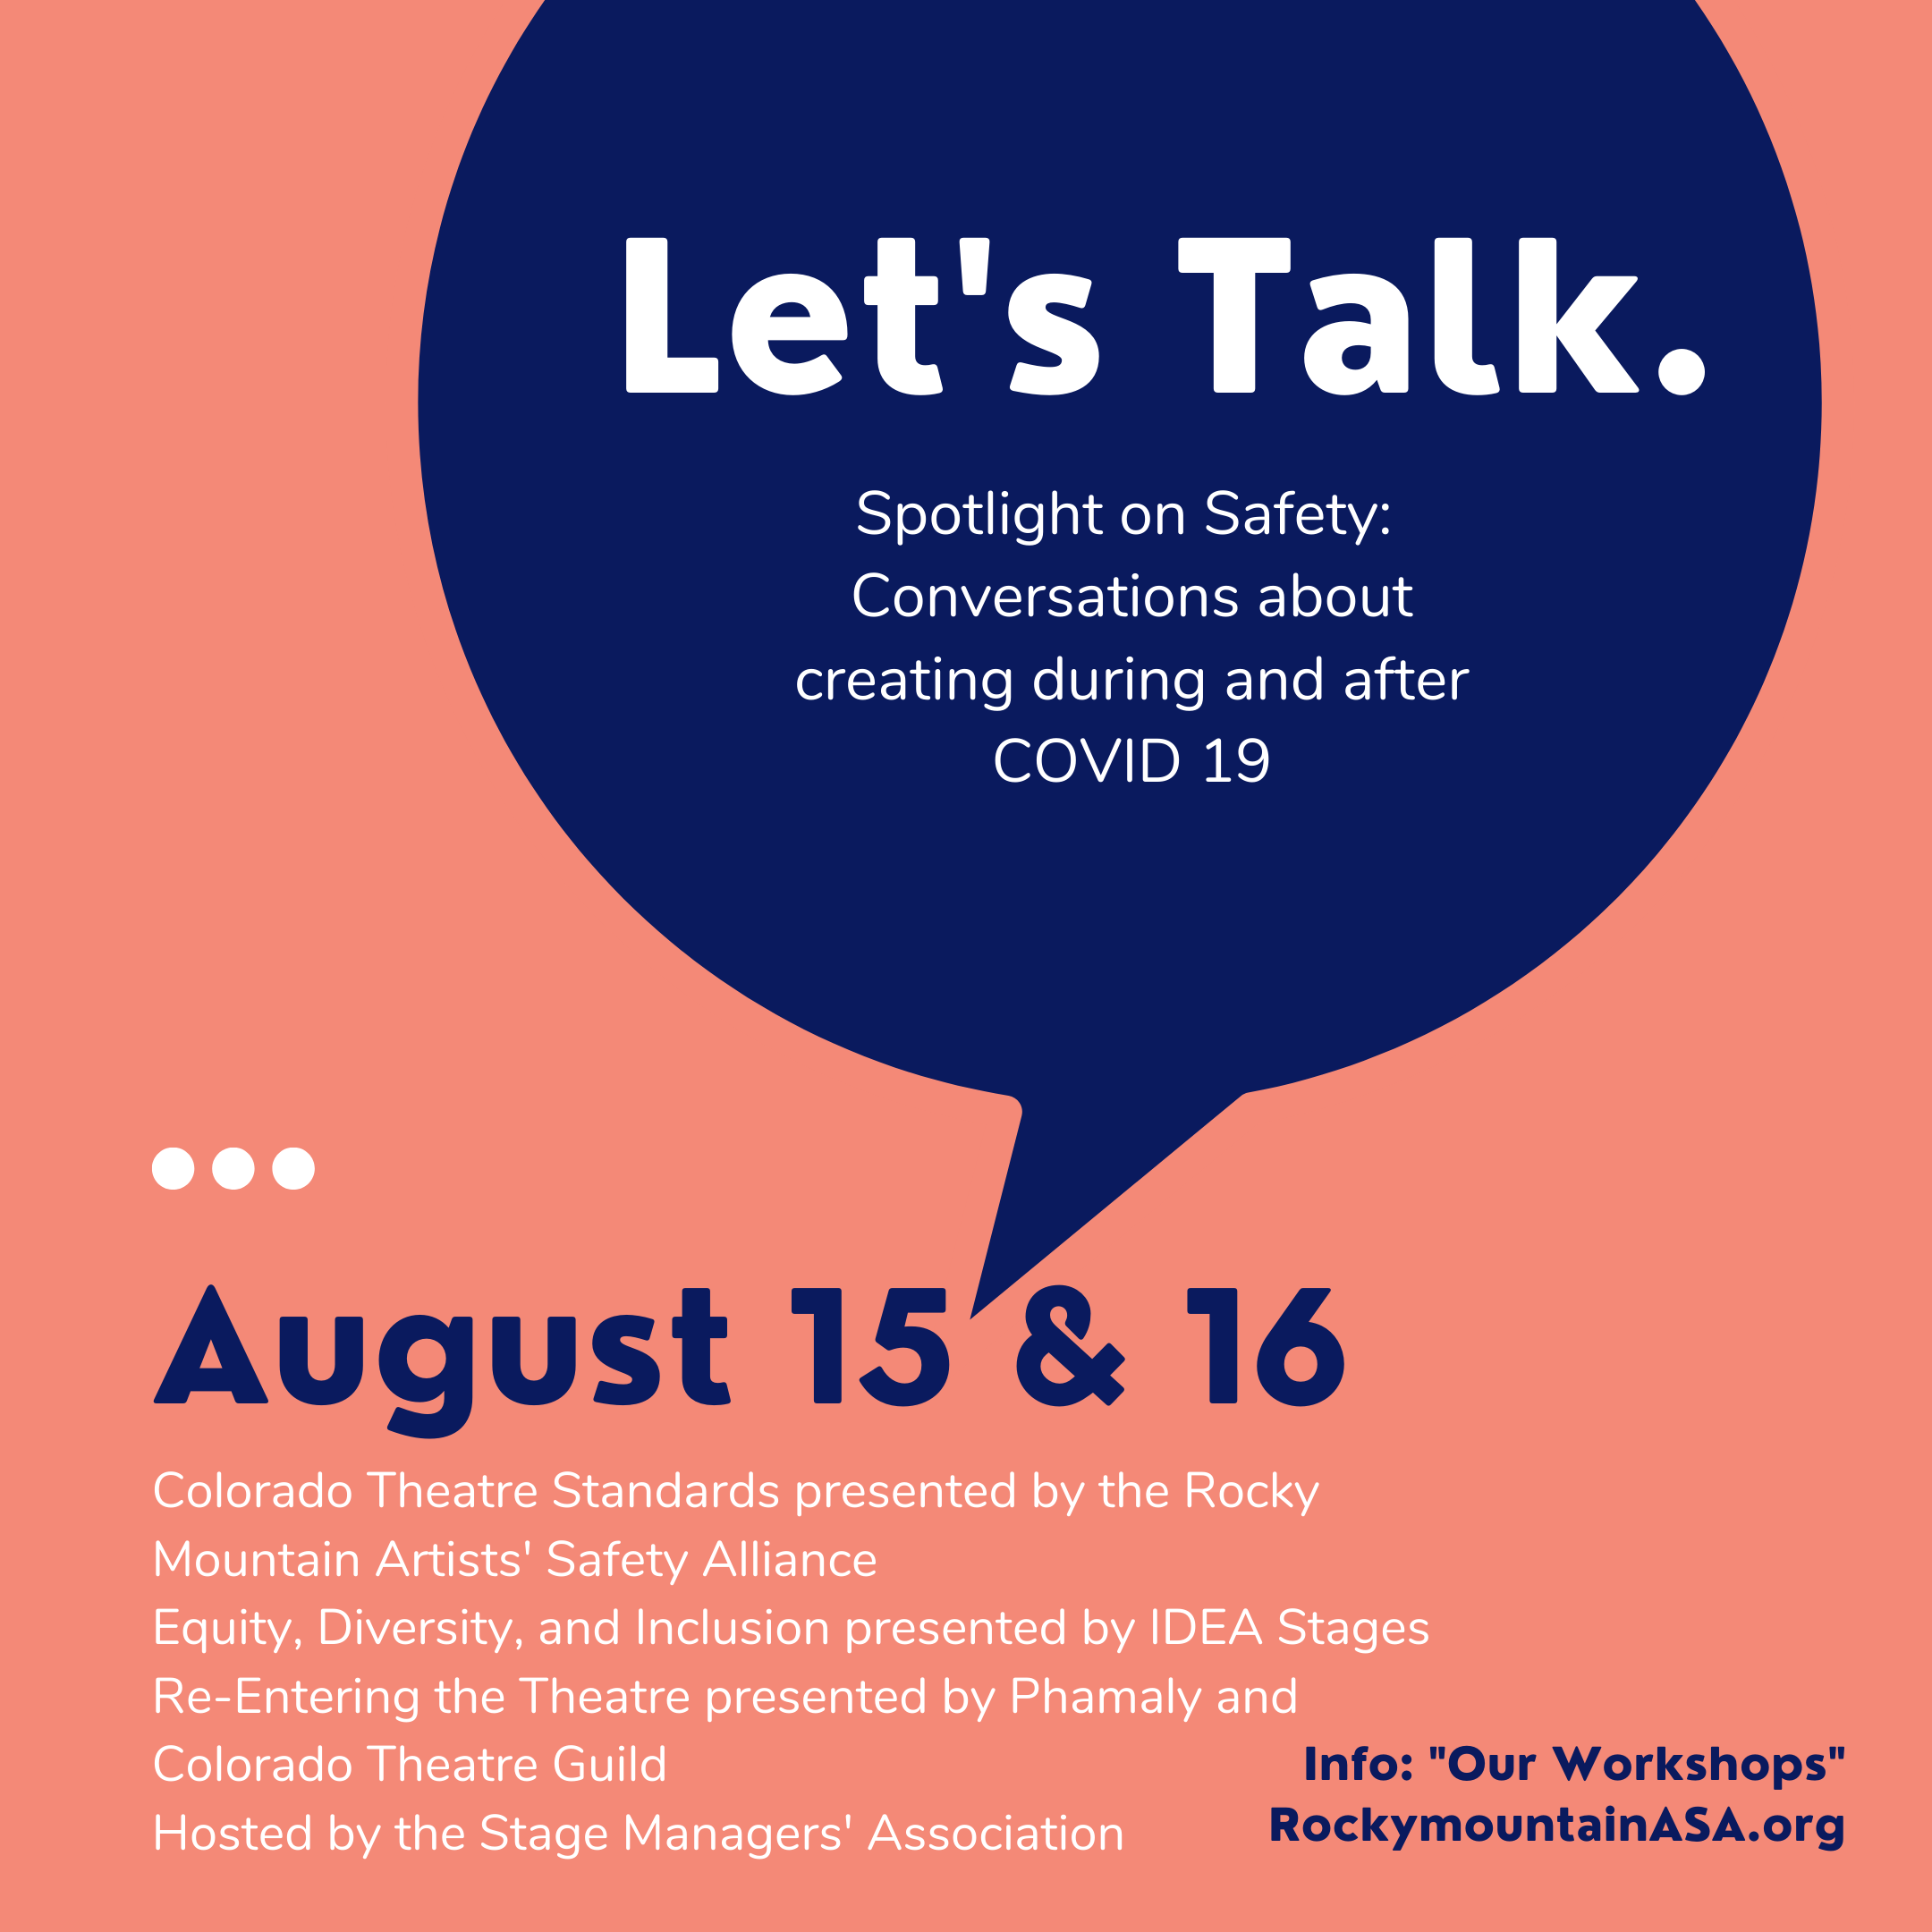 Let's Talk - Promo Image for August 15 & 15 Safer In Theatre Listening Sessions